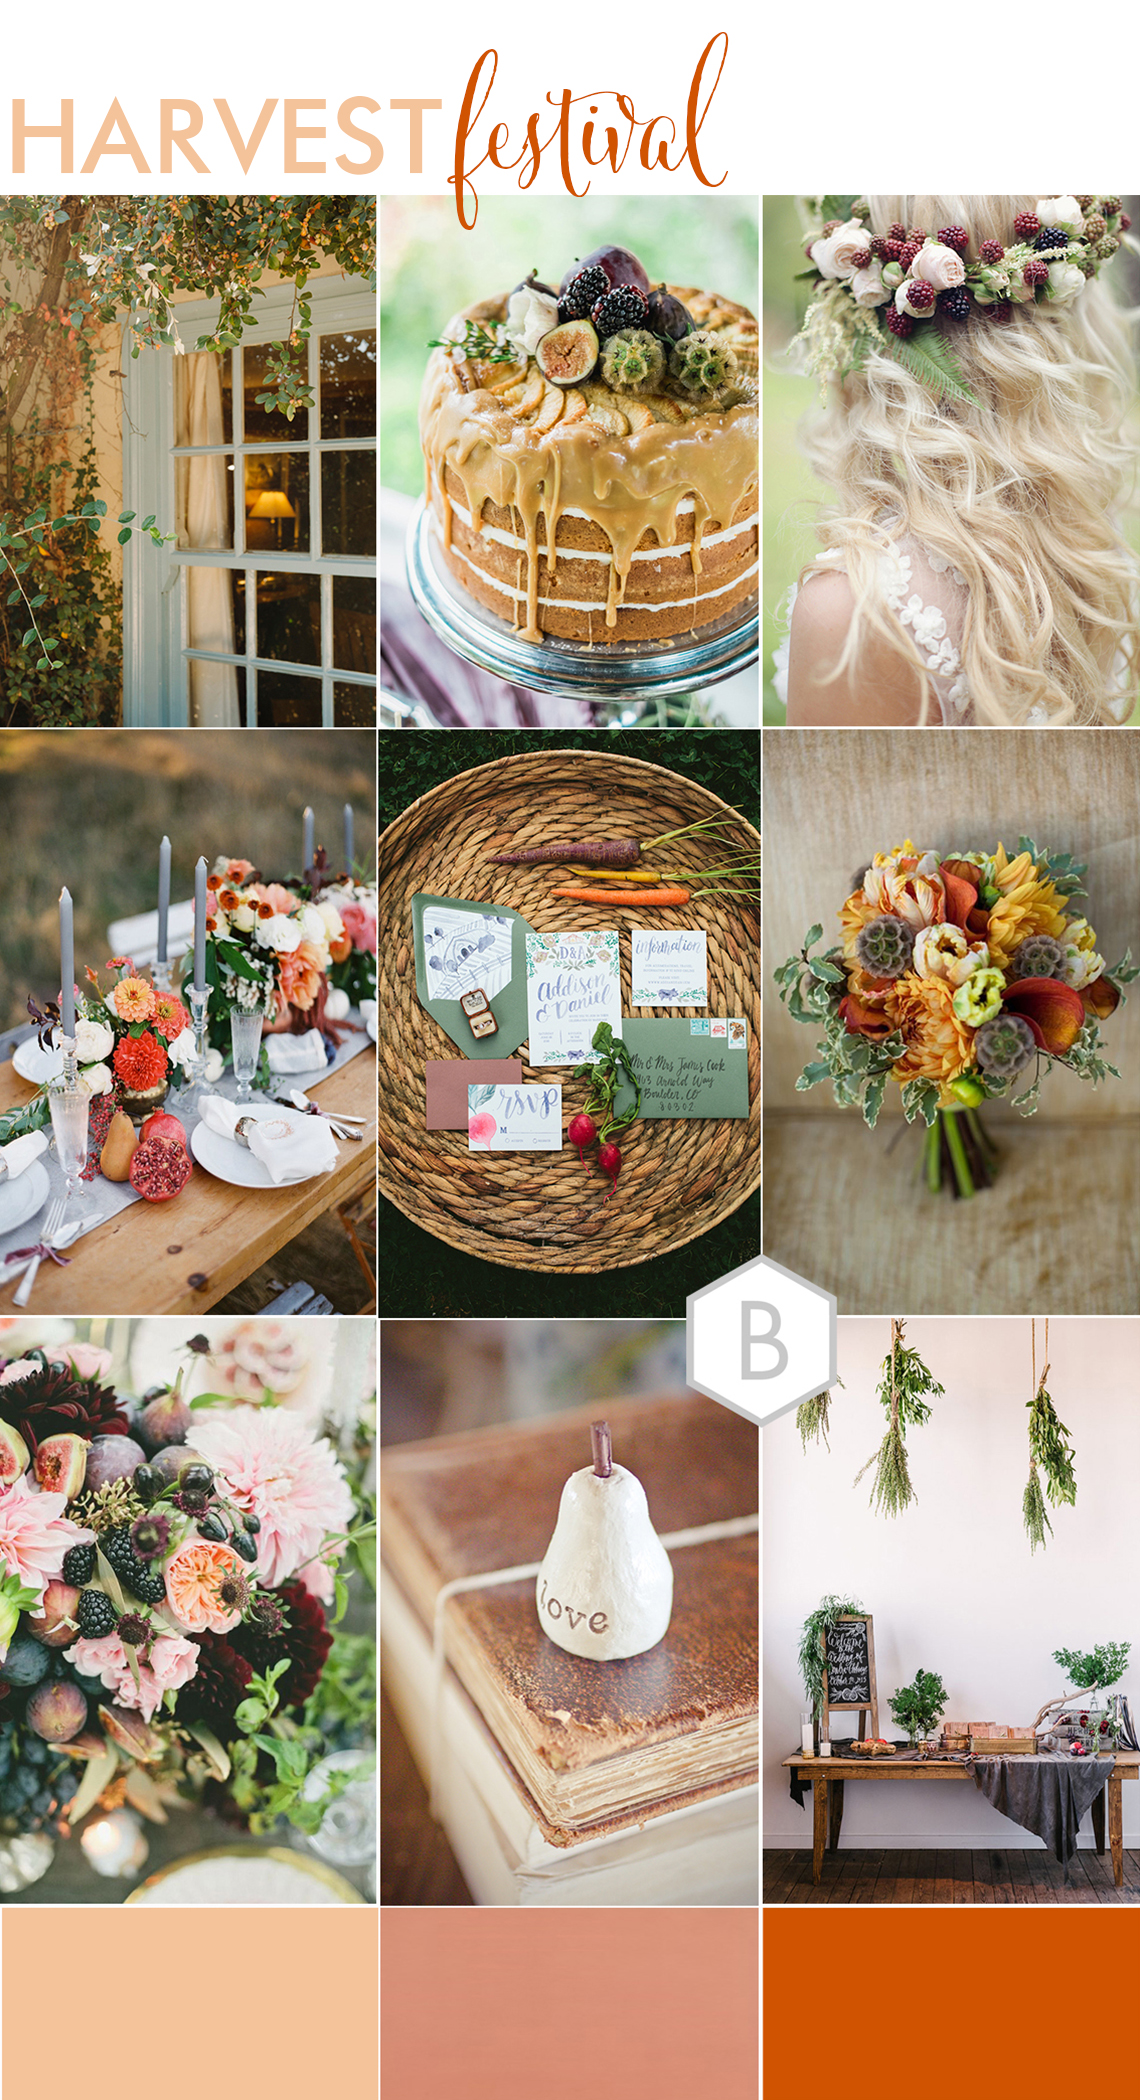 wedding moodboard of ideas and inspirations for an autumn wedding in the couuntryside